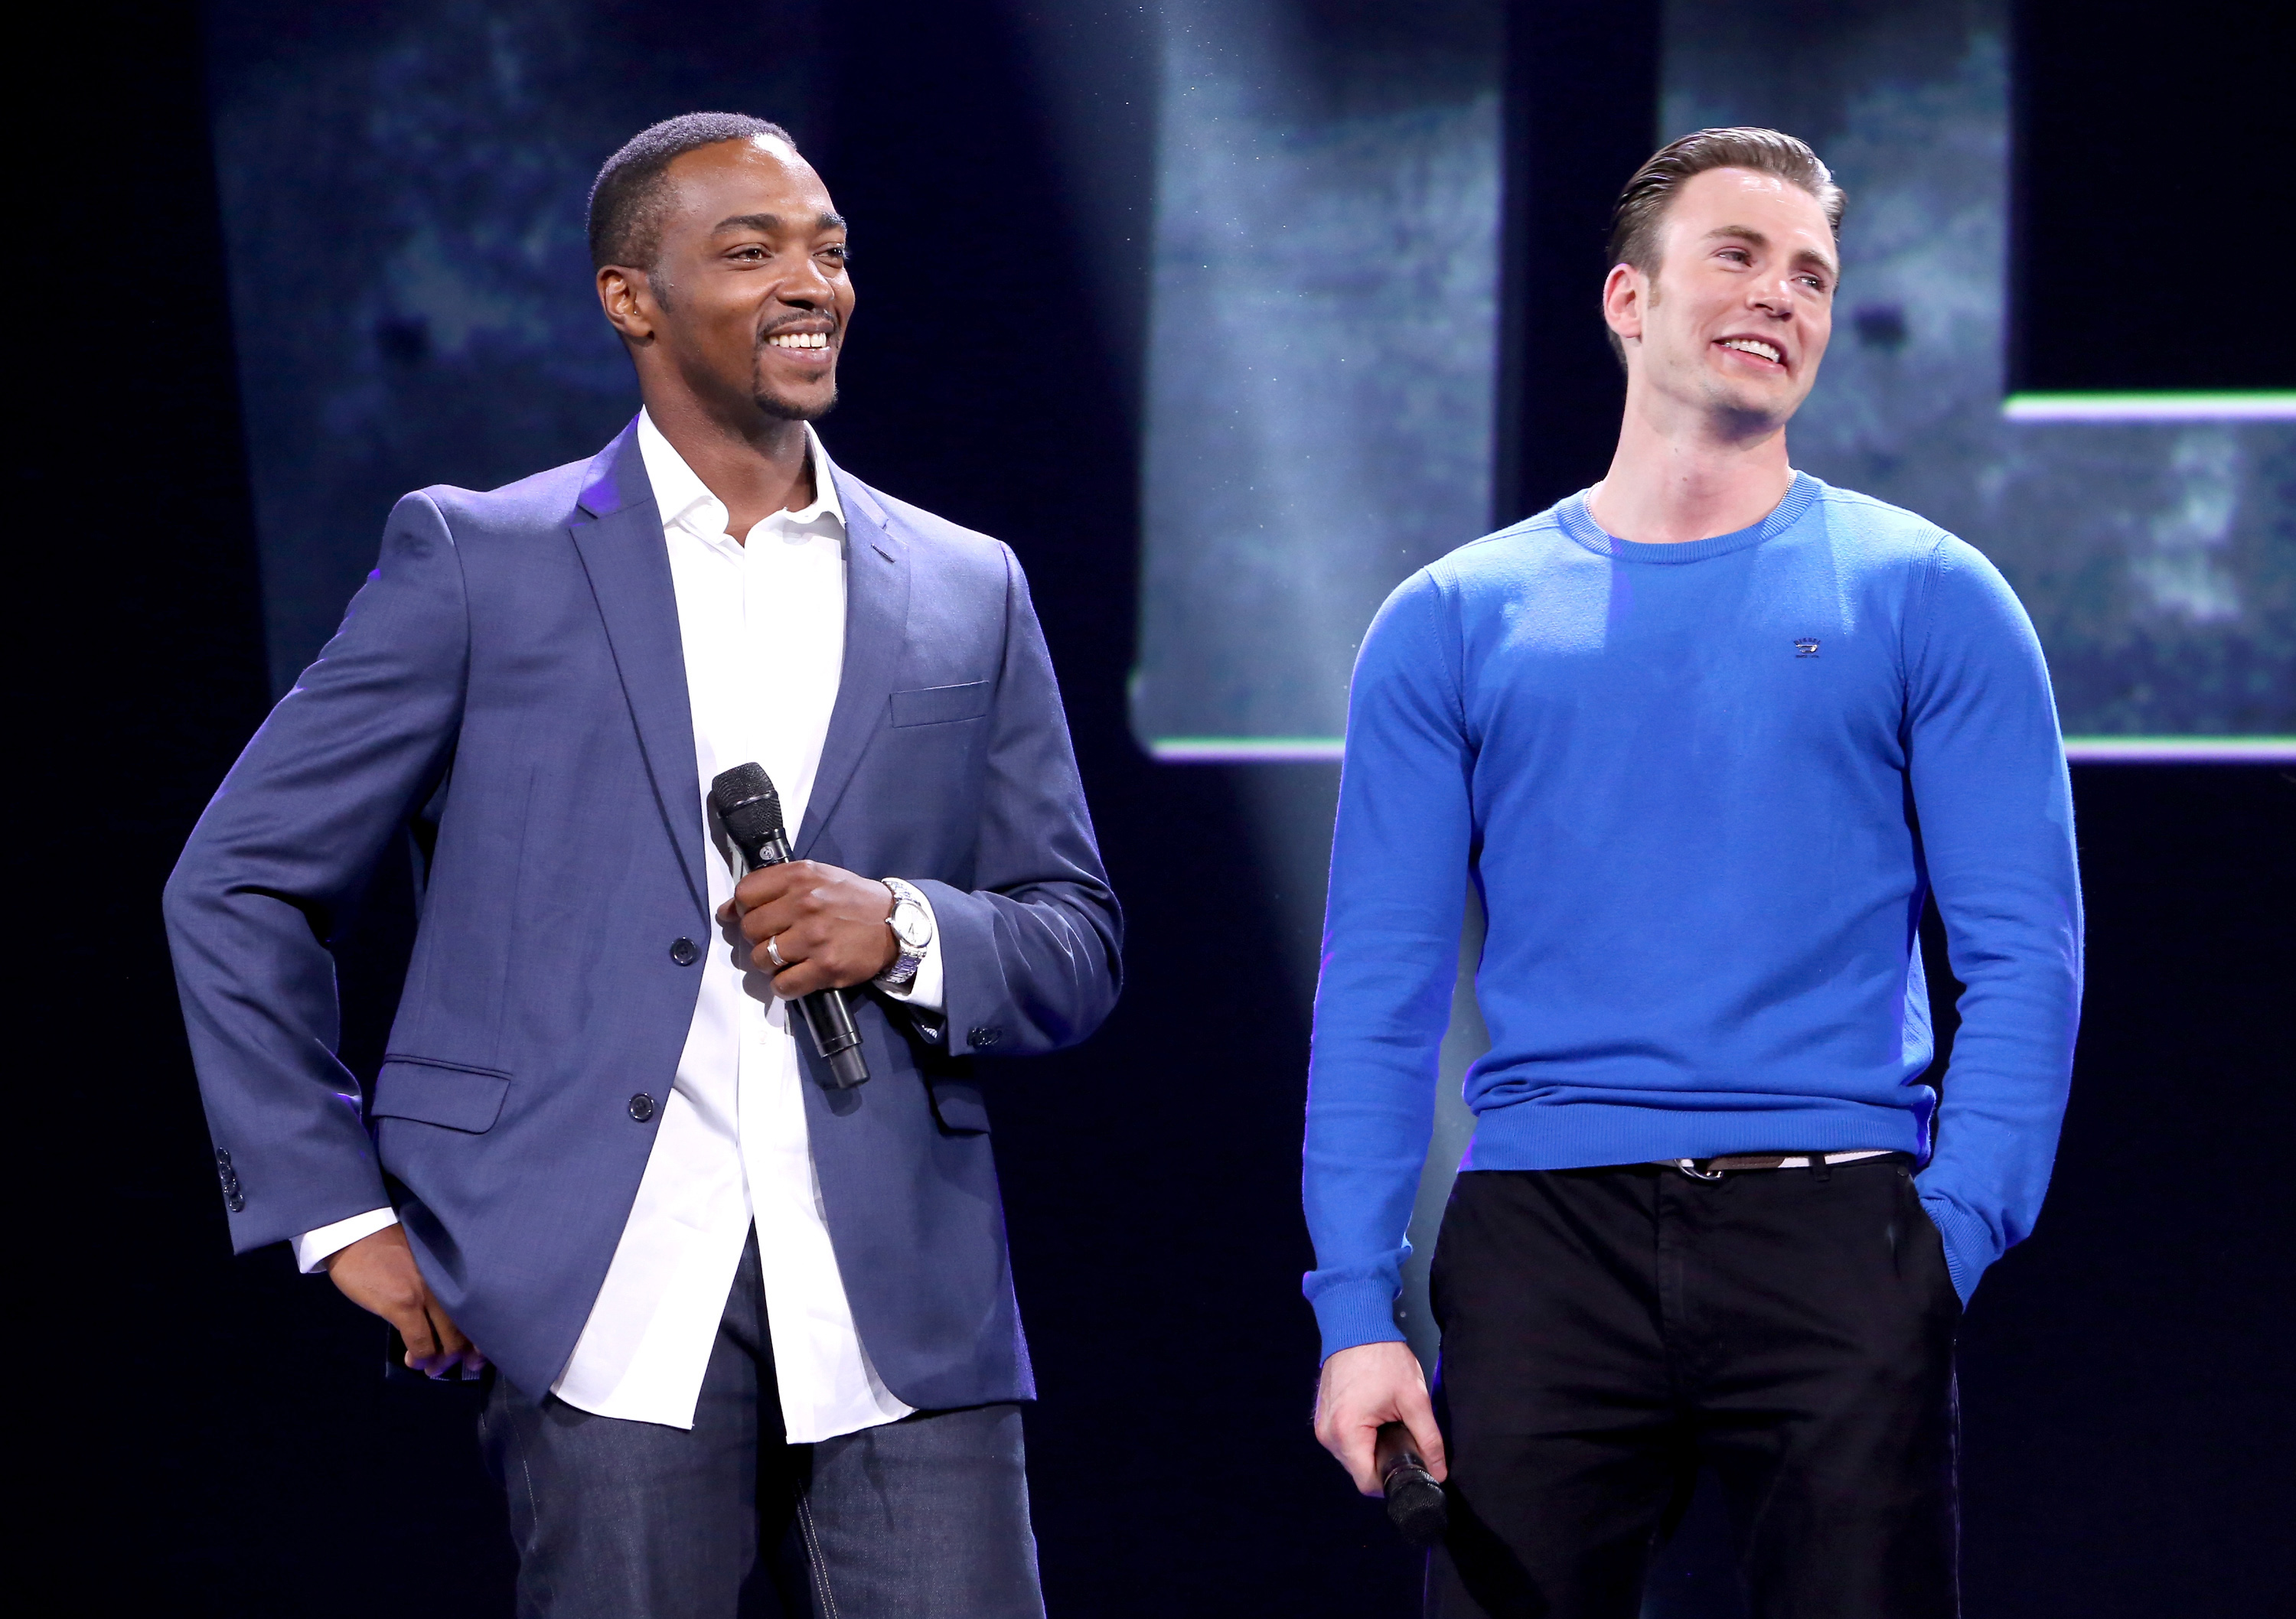 Actors Anthony Mackie, left, and Chris Evans of CCaptain America: Civil War took part in  Worlds, Galaxies, and Universes: Live Action at The Walt Disney Studios  presentation at Disney's D23 EXPO 2015 in Anaheim, Calif., on Aug. 15, 2015.